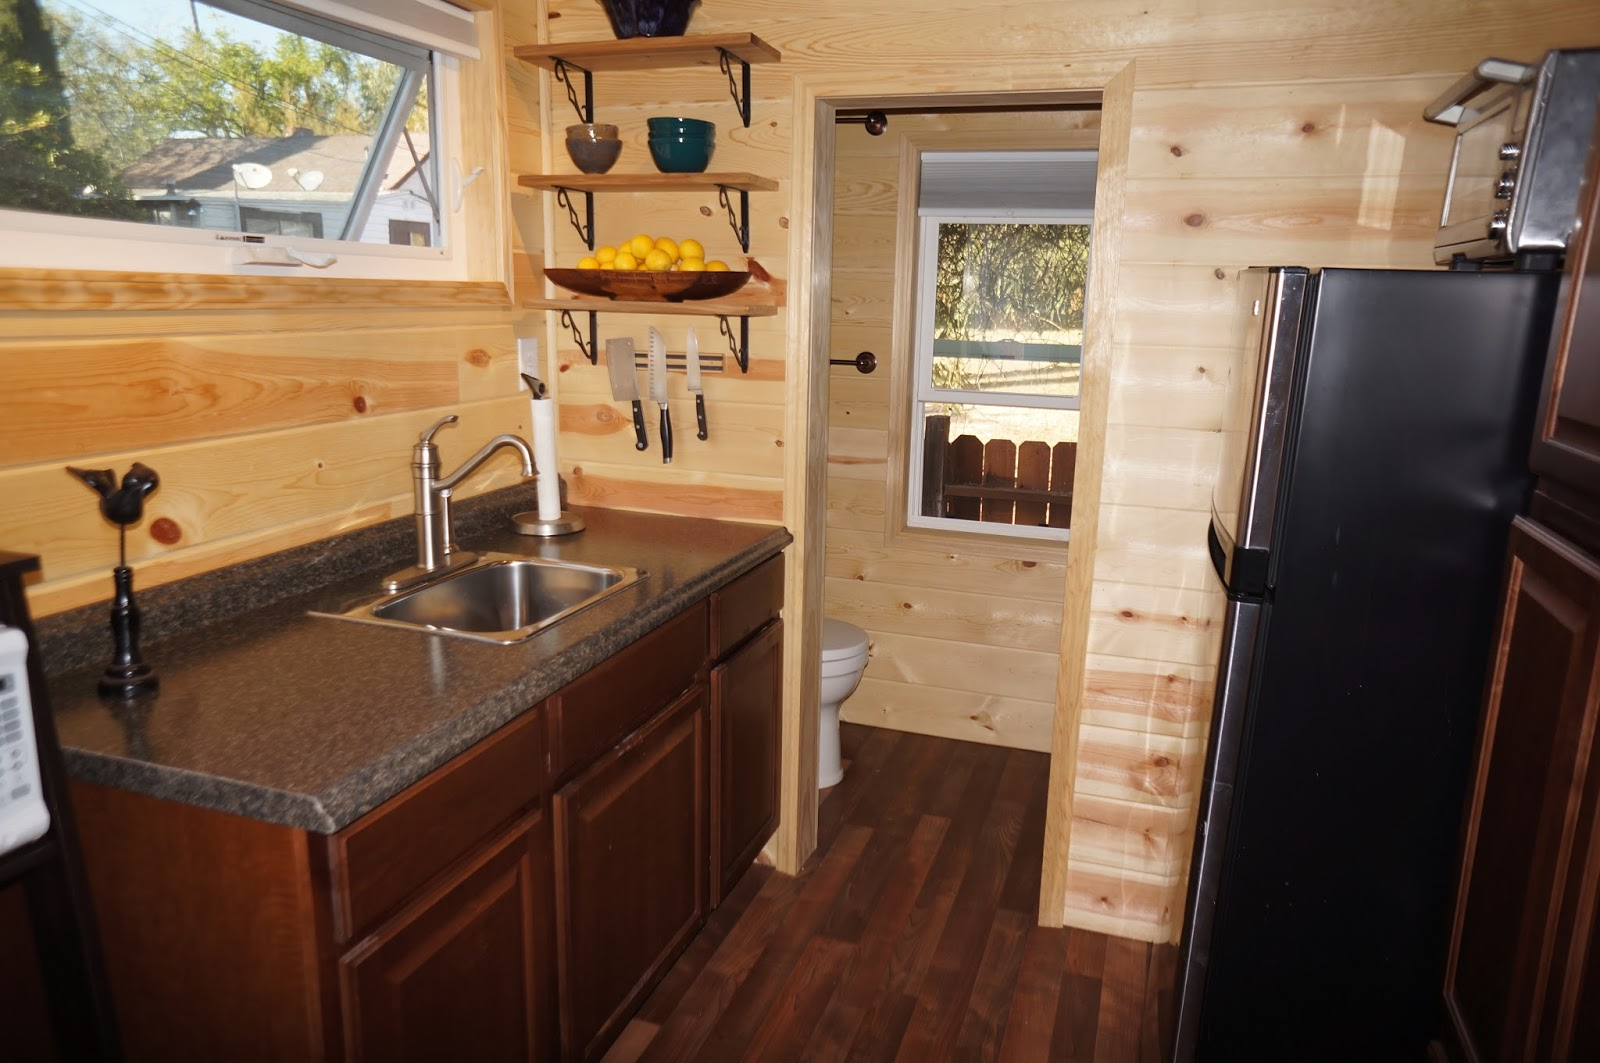 Tiny Home Designs: TINY HOUSE TOWN: South Pasadena Tiny House (240 Sq Ft